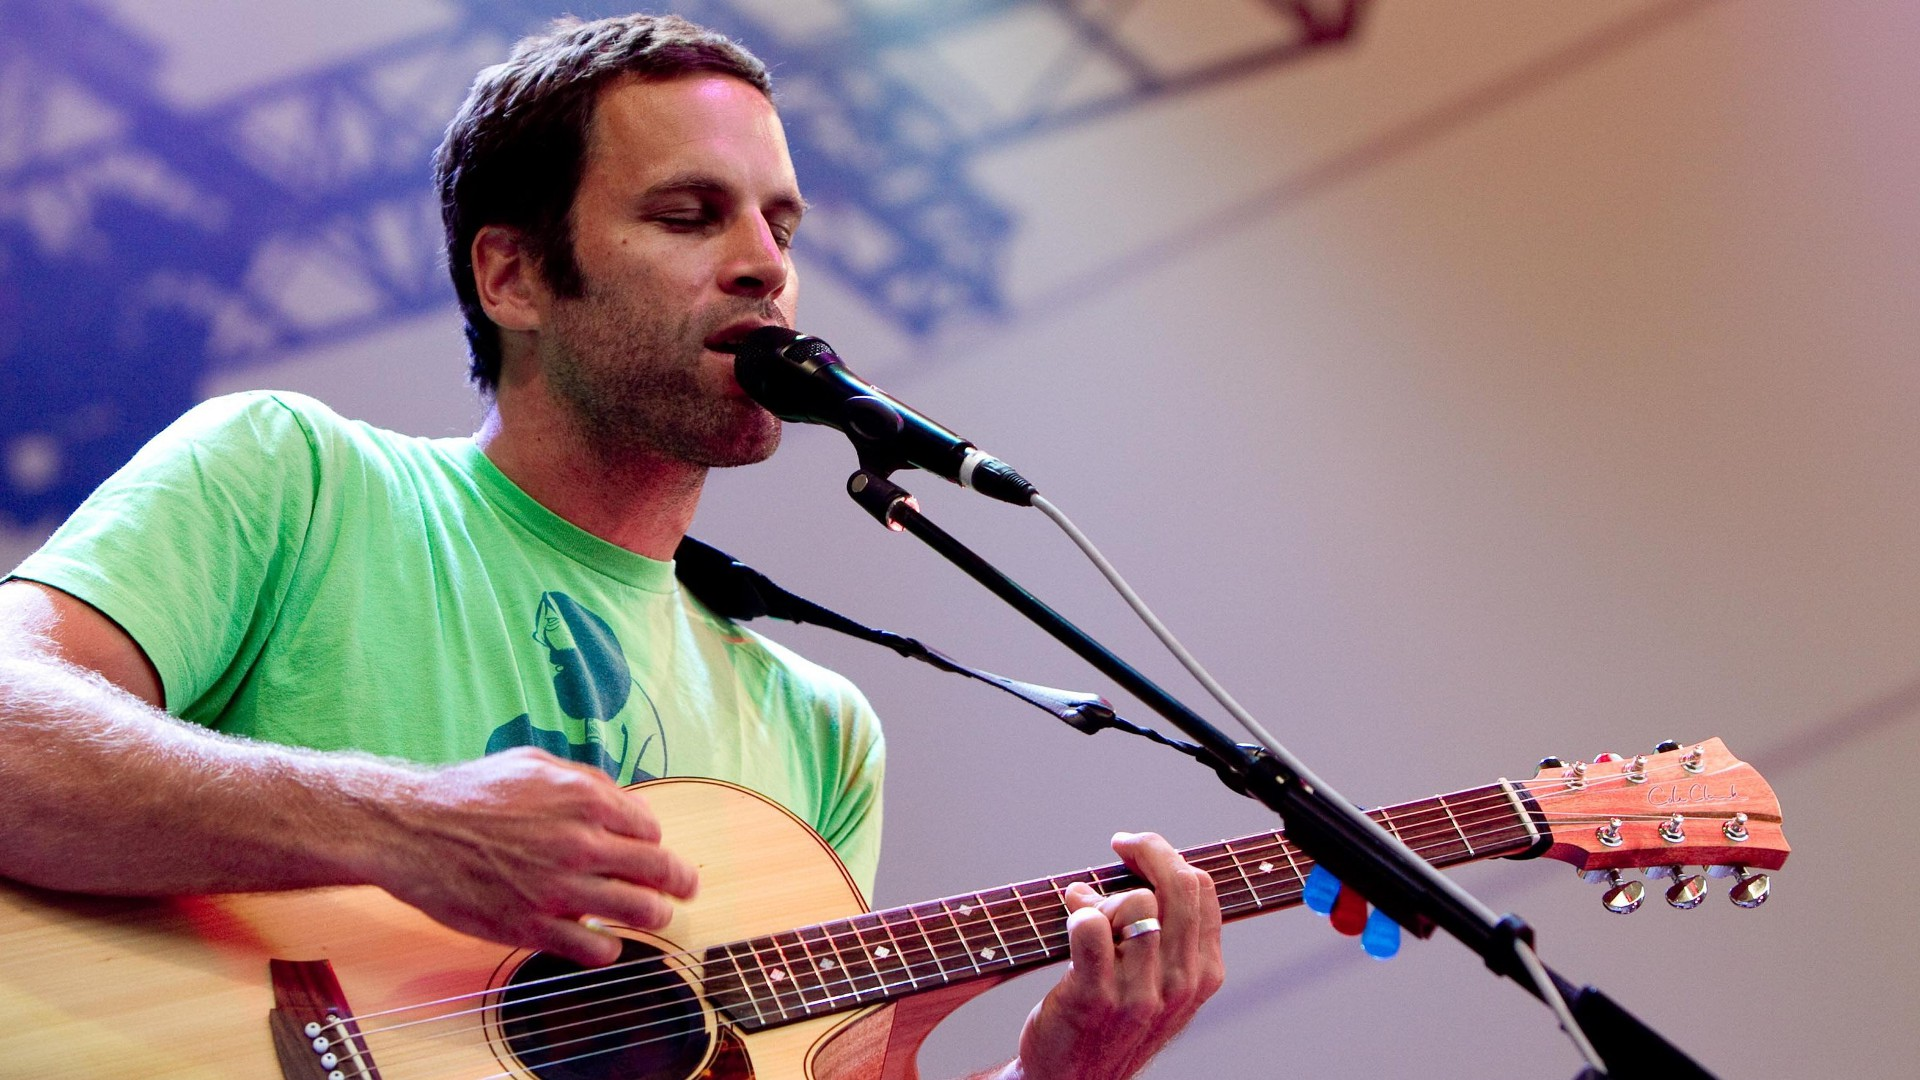 Jack johnson dvd download.